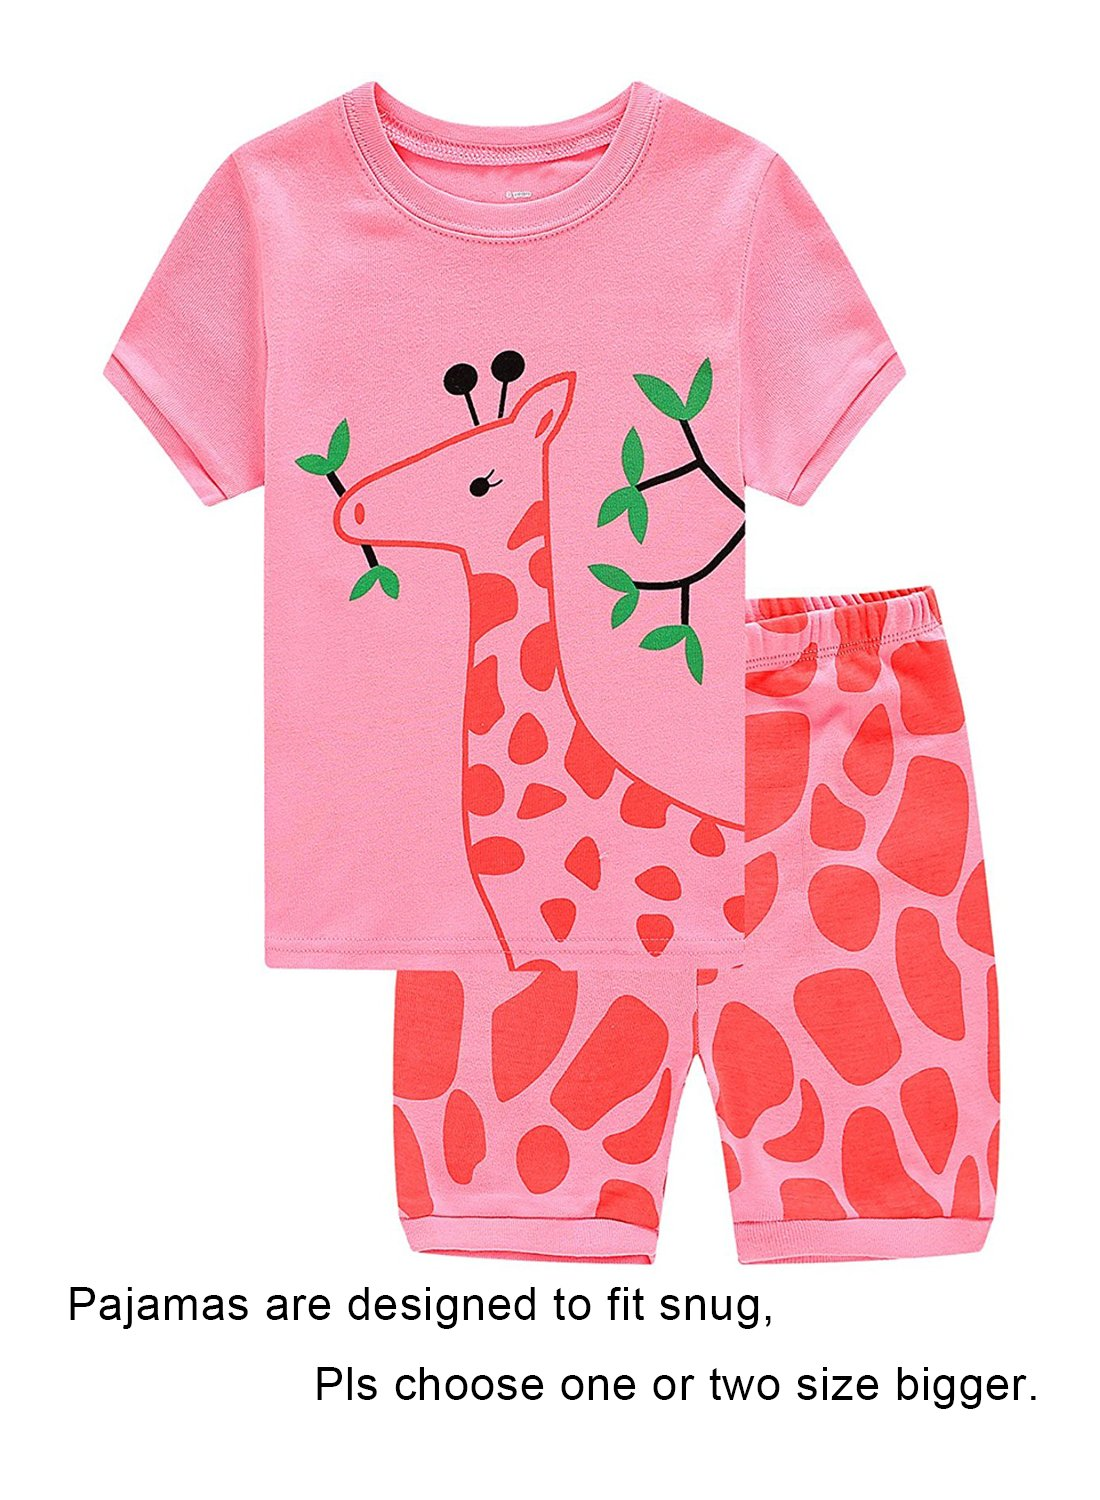 Big Girls Short Sleeve Pajamas Sets 100% Cotton Pyjamas Kids Pjs Size 10 Pink by IF Pajamas (Image #1)